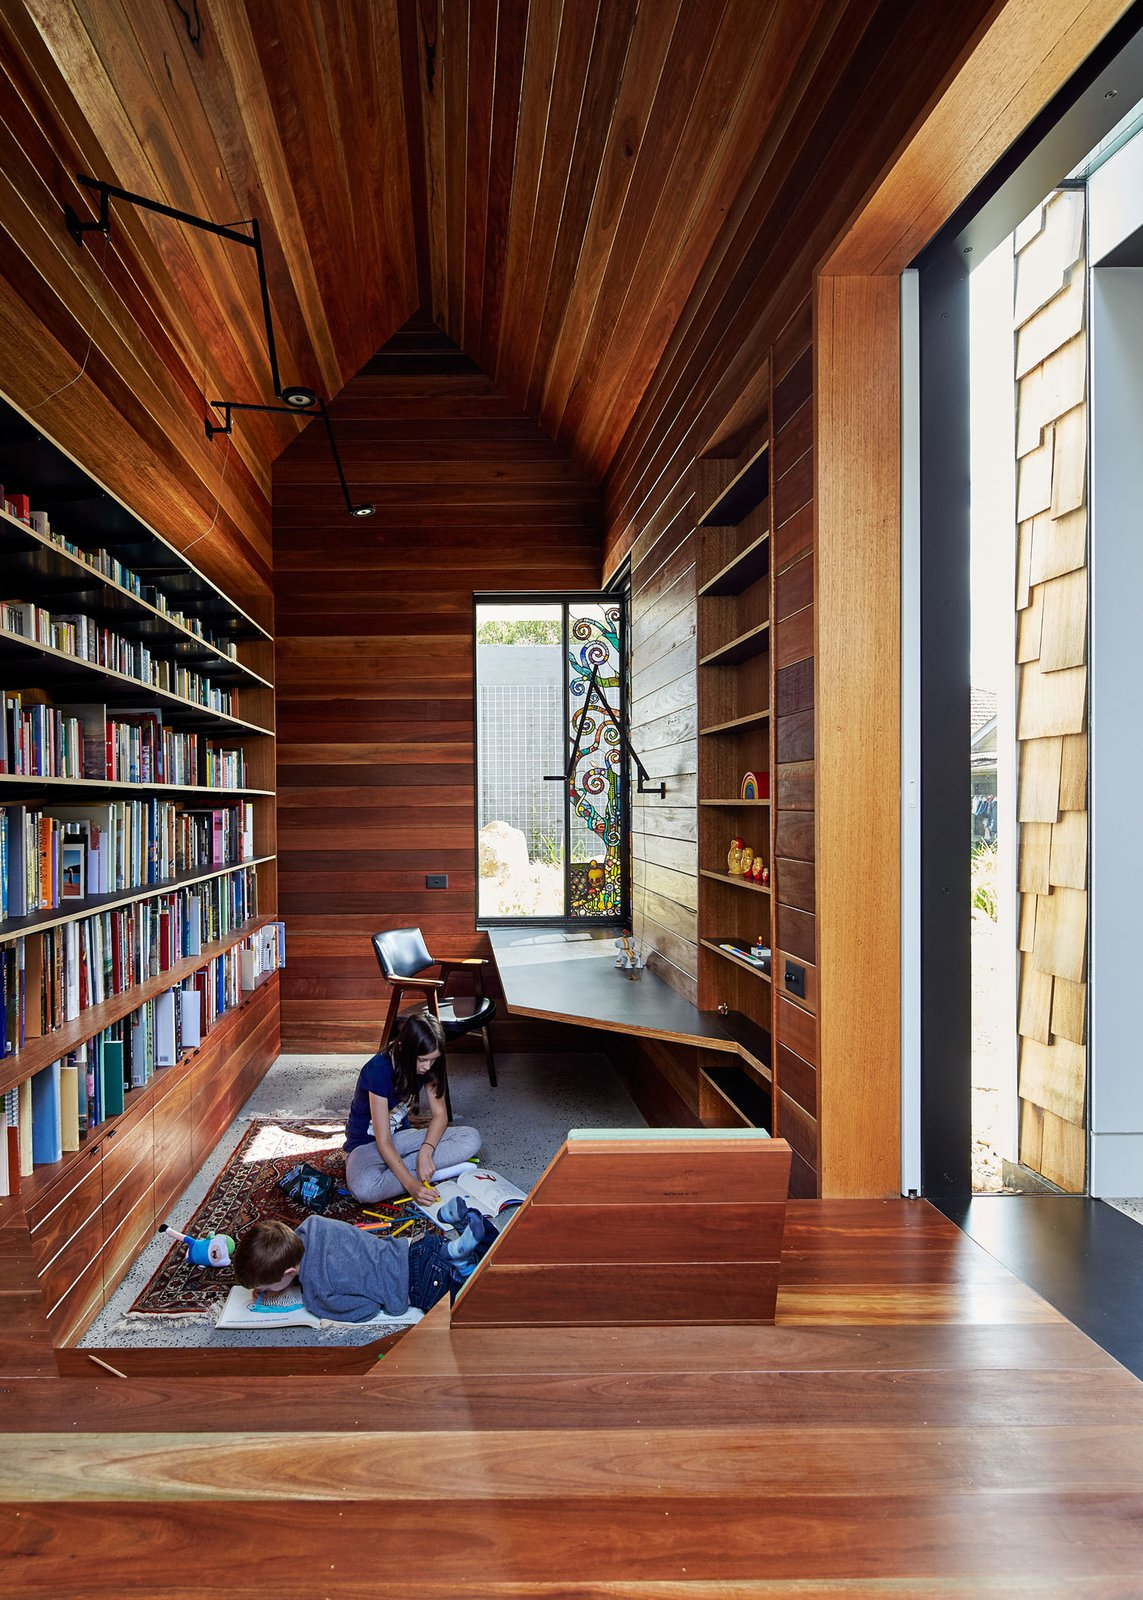 """The library is lined in reclaimed spotted gum that Maynard says """"brings with it wisdom from its previous life."""" A stained glass window by Leigh Schellekens makes the contemplative room feel like a domestic chapel. Tagged: Office, Library, Medium Hardwood Floor, and Bookcase.  Read by DAVE MORIN from This Transformed Melbourne House Resembles a Quirky Village"""